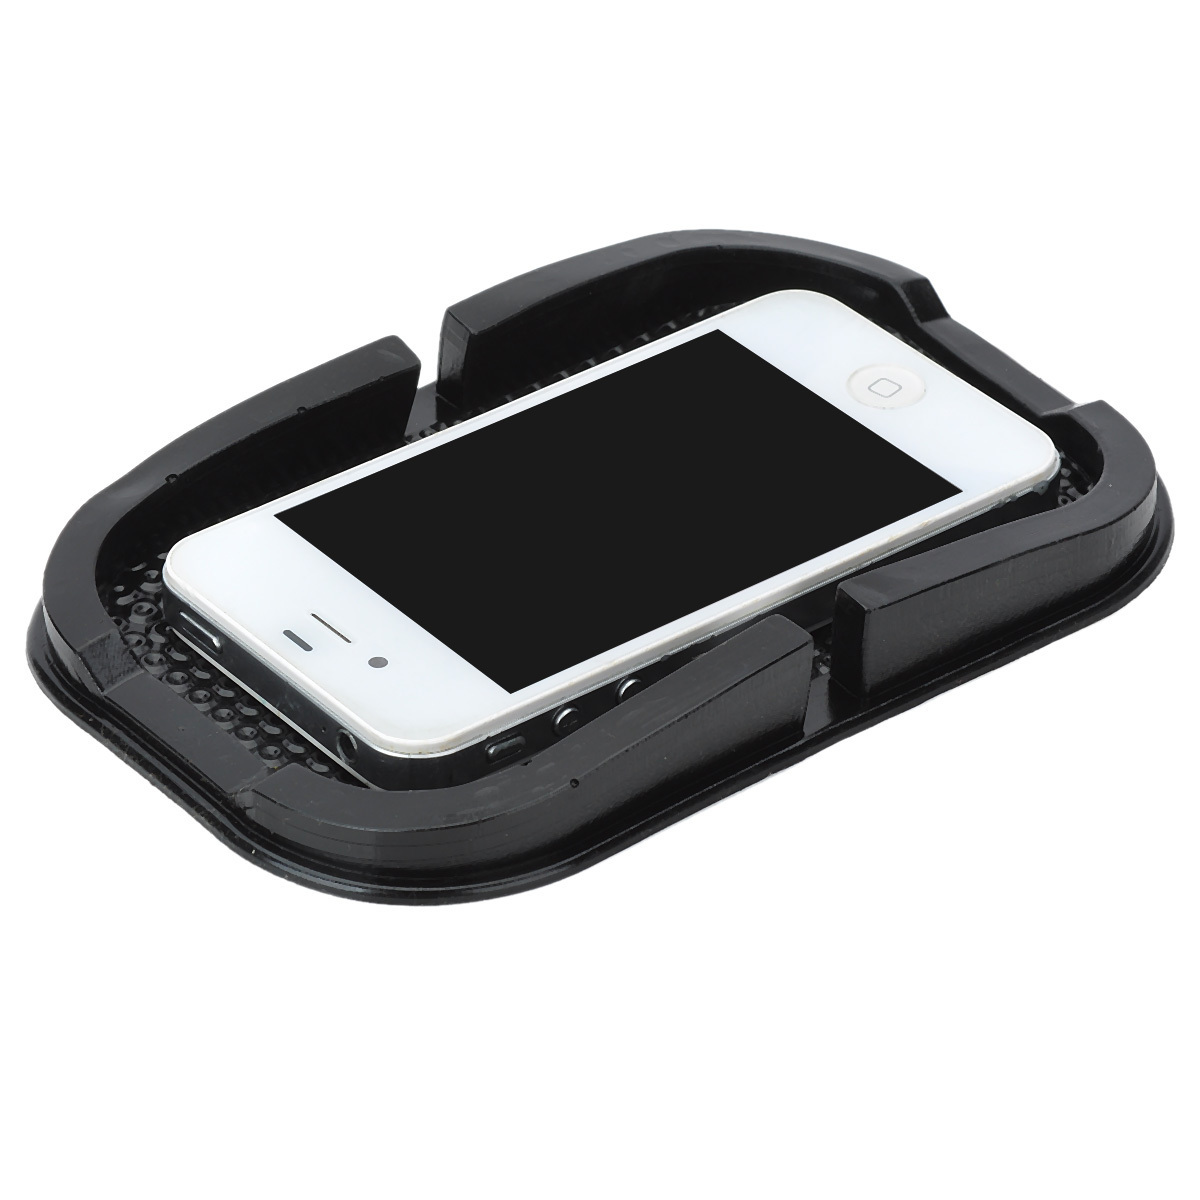 Anti-skid Rubber Stand Holder Pad for Mobile Phone (Black) - thumbnail